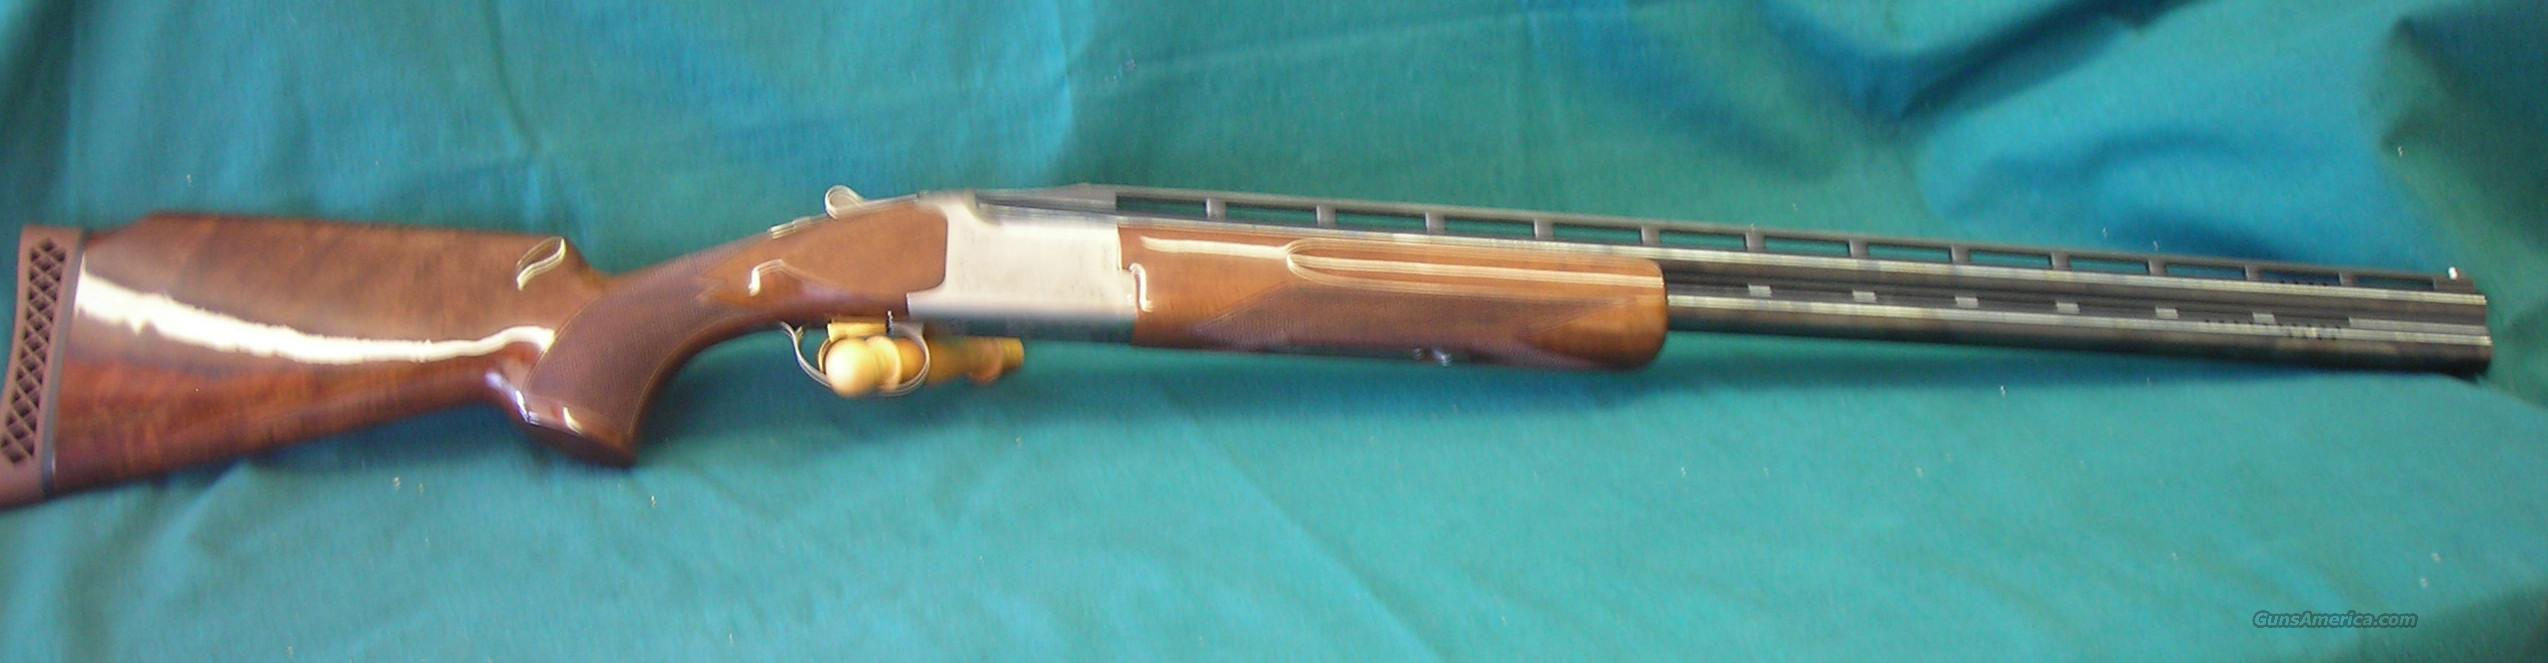 Browning Citori Special Trap Grade 3  Guns > Shotguns > Browning Shotguns > Over Unders > Citori > Trap/Skeet